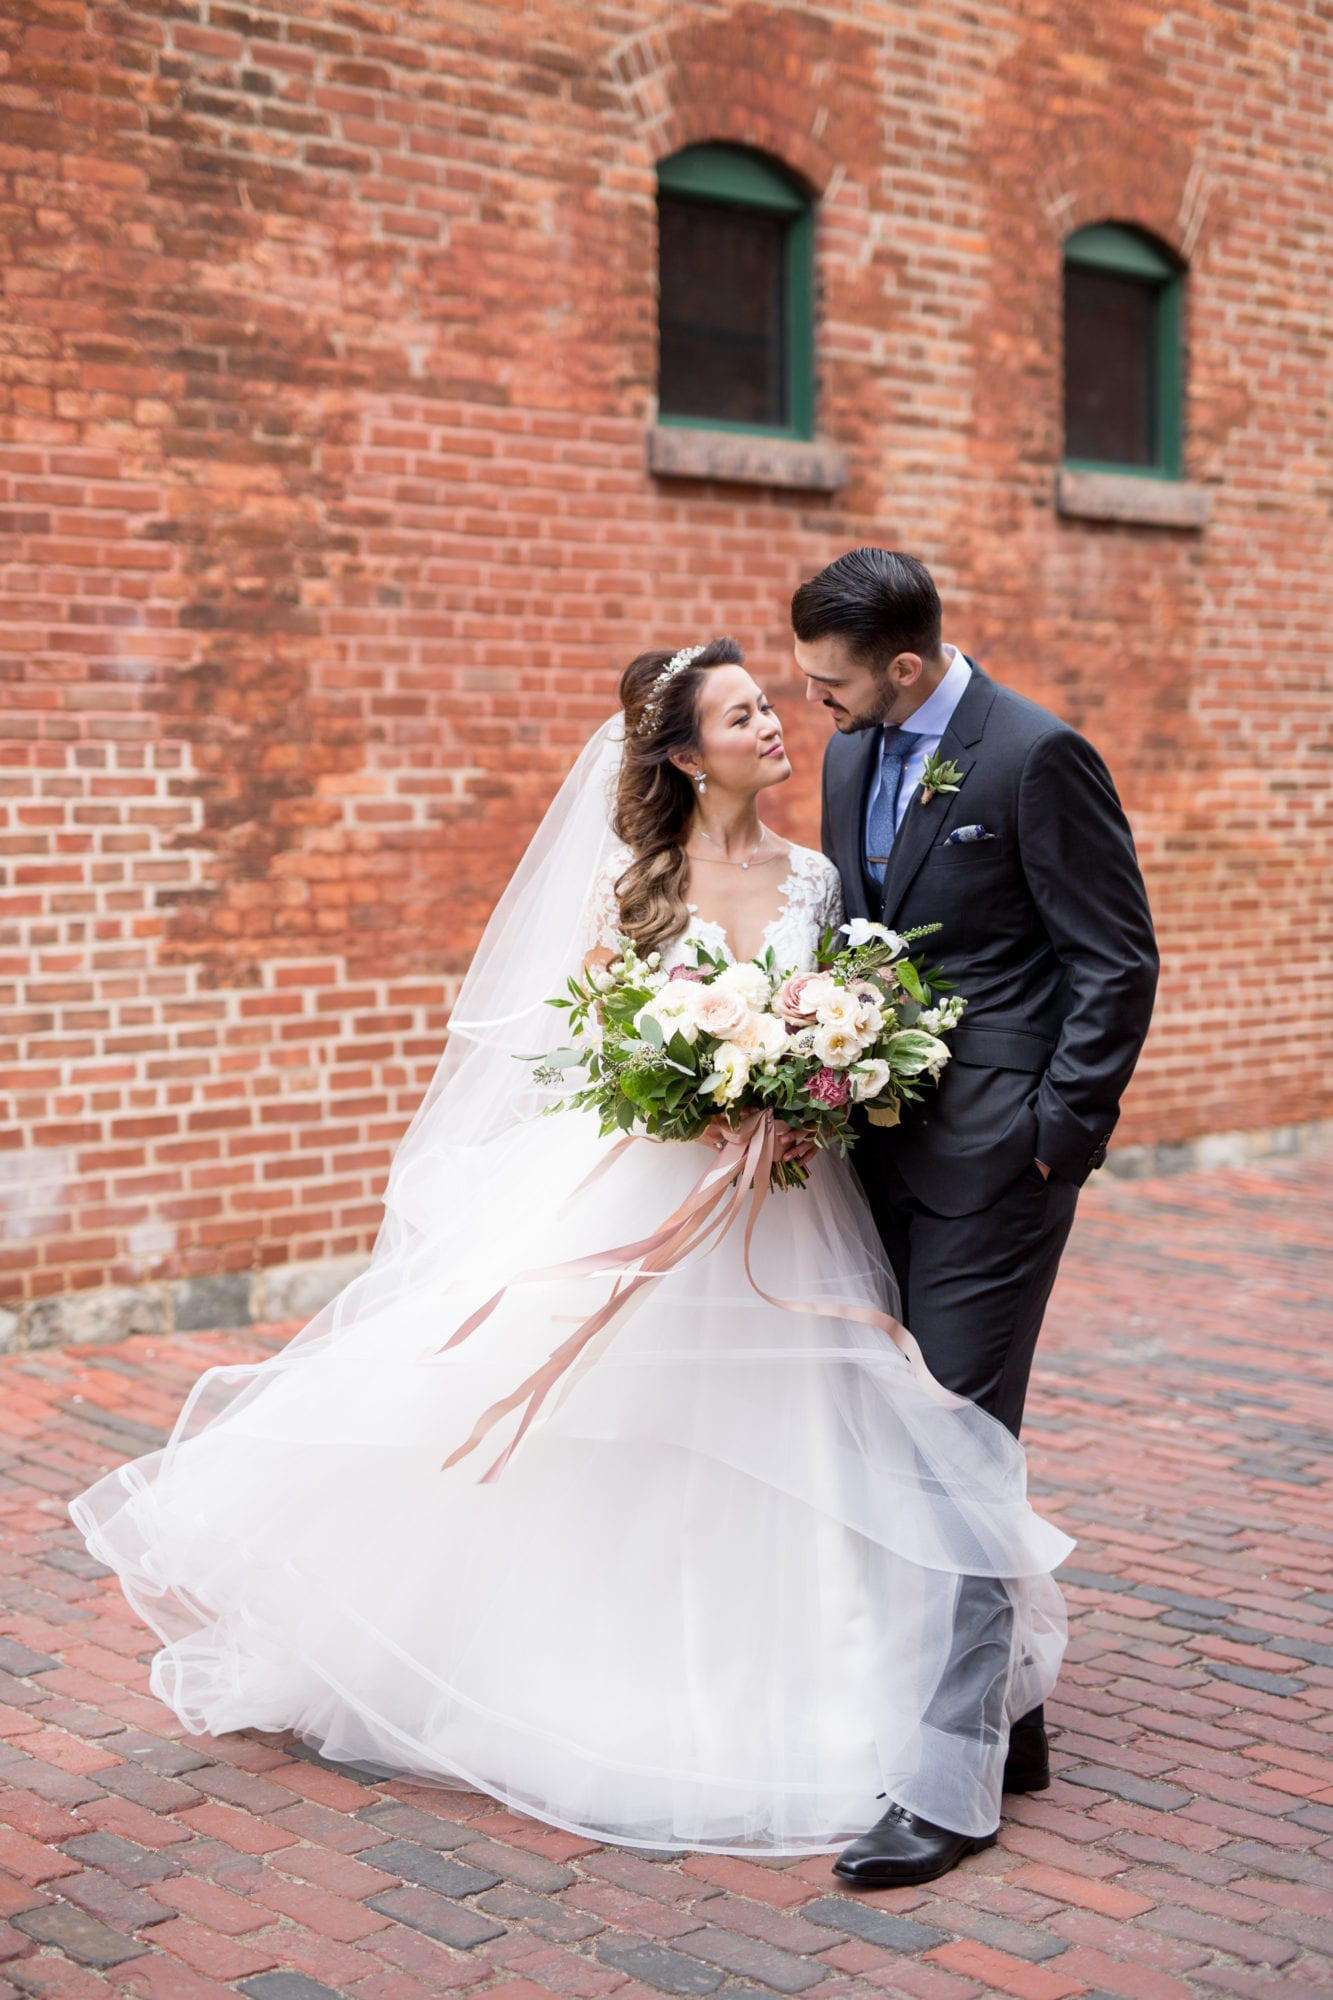 Newlyweds Bride Groom Brick Toronto Wedding Zsuzsi Pal Photography Distillery District